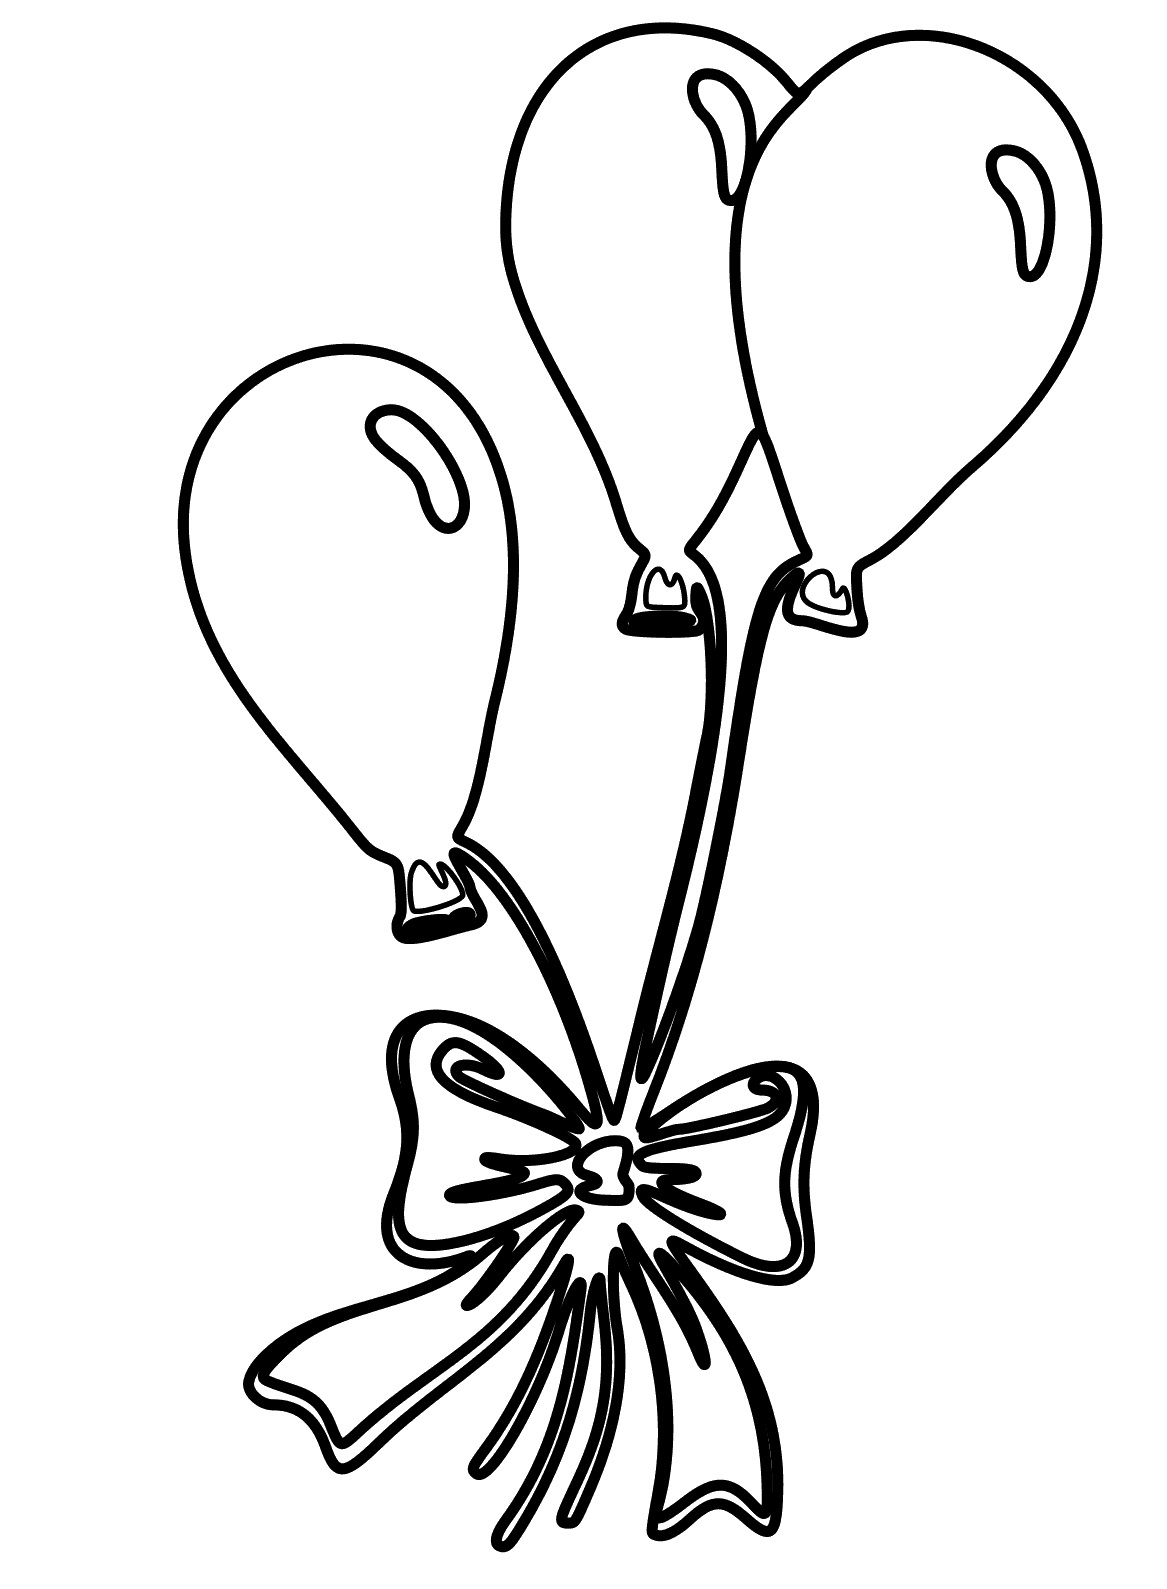 coloring balloon pages balloon coloring pages best coloring pages for kids pages coloring balloon